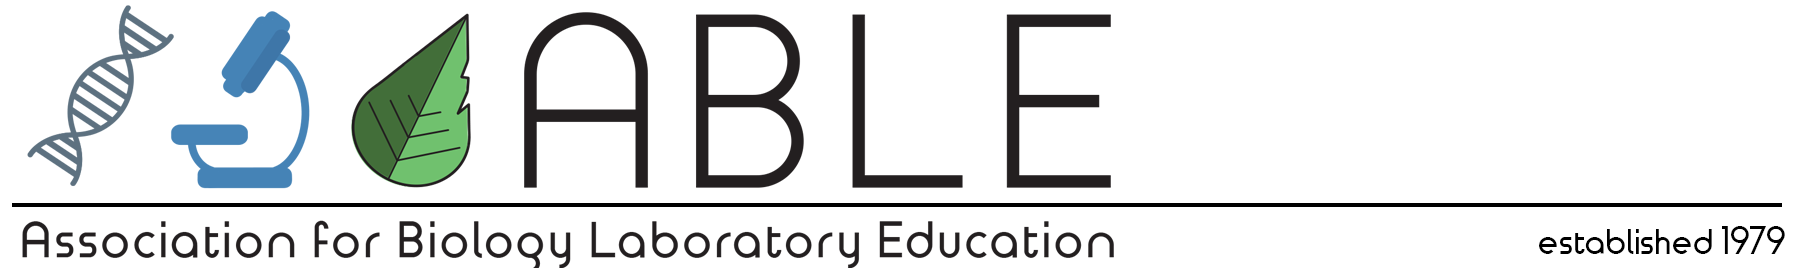 Exhibitors & Sponsors – Association for Biology Laboratory Education